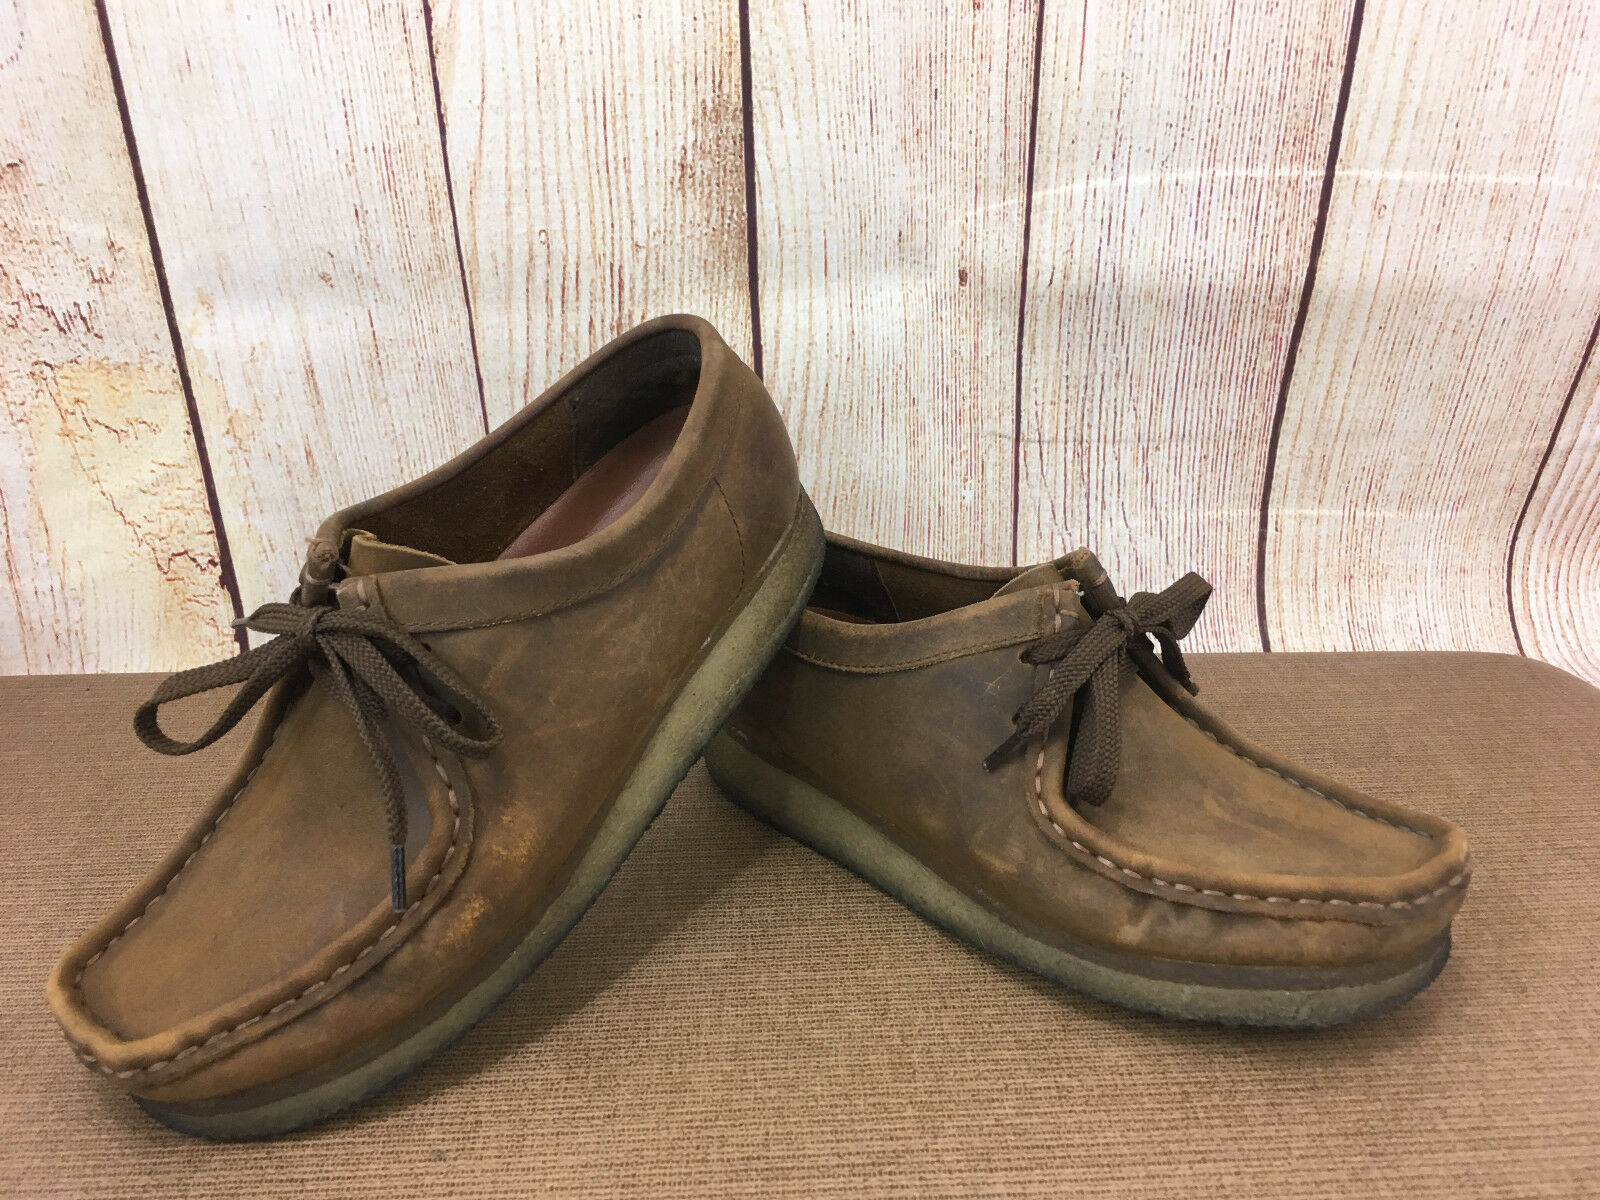 CLARKS Wallabees Chukka 38257 Brown Leather Beeswax  Womens 7.5M H11(5)